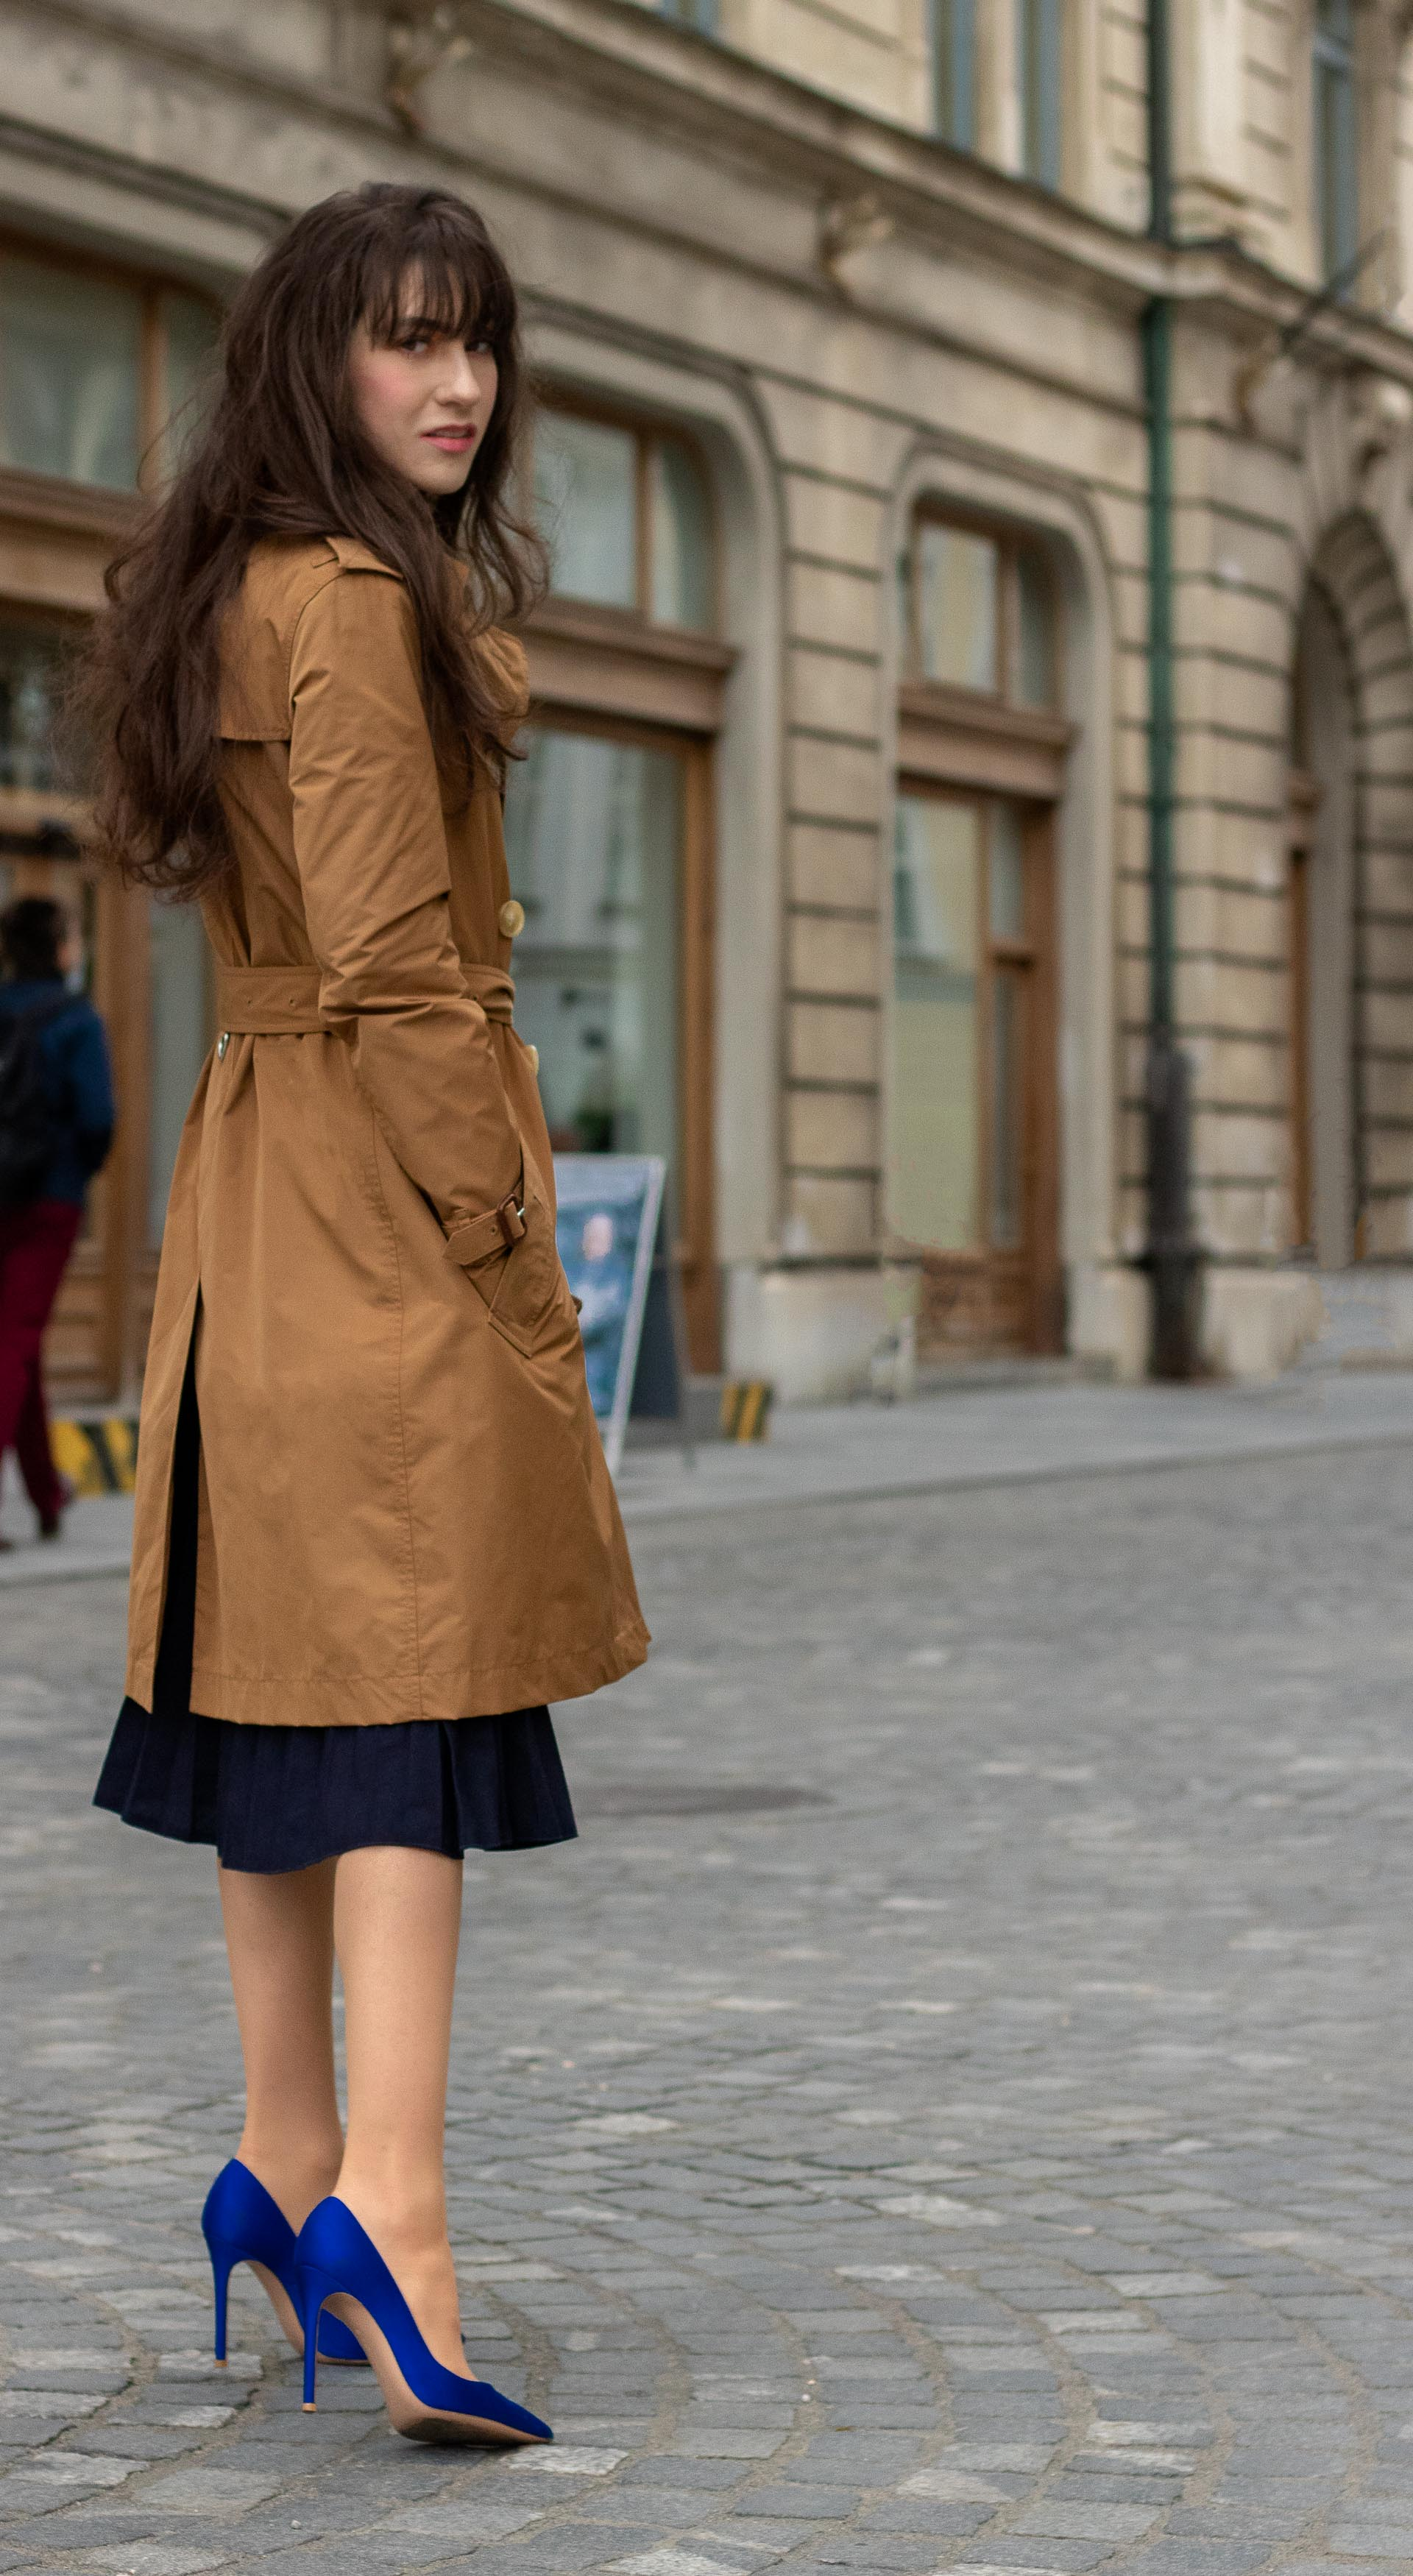 Beautiful Fashion blogger Veronika Lipar of Brunette from Wall Street wearing camel Burberry Kensington trench coat and blue pleated midi skirt with Gianvito Rossi blue pumps on the street in spring